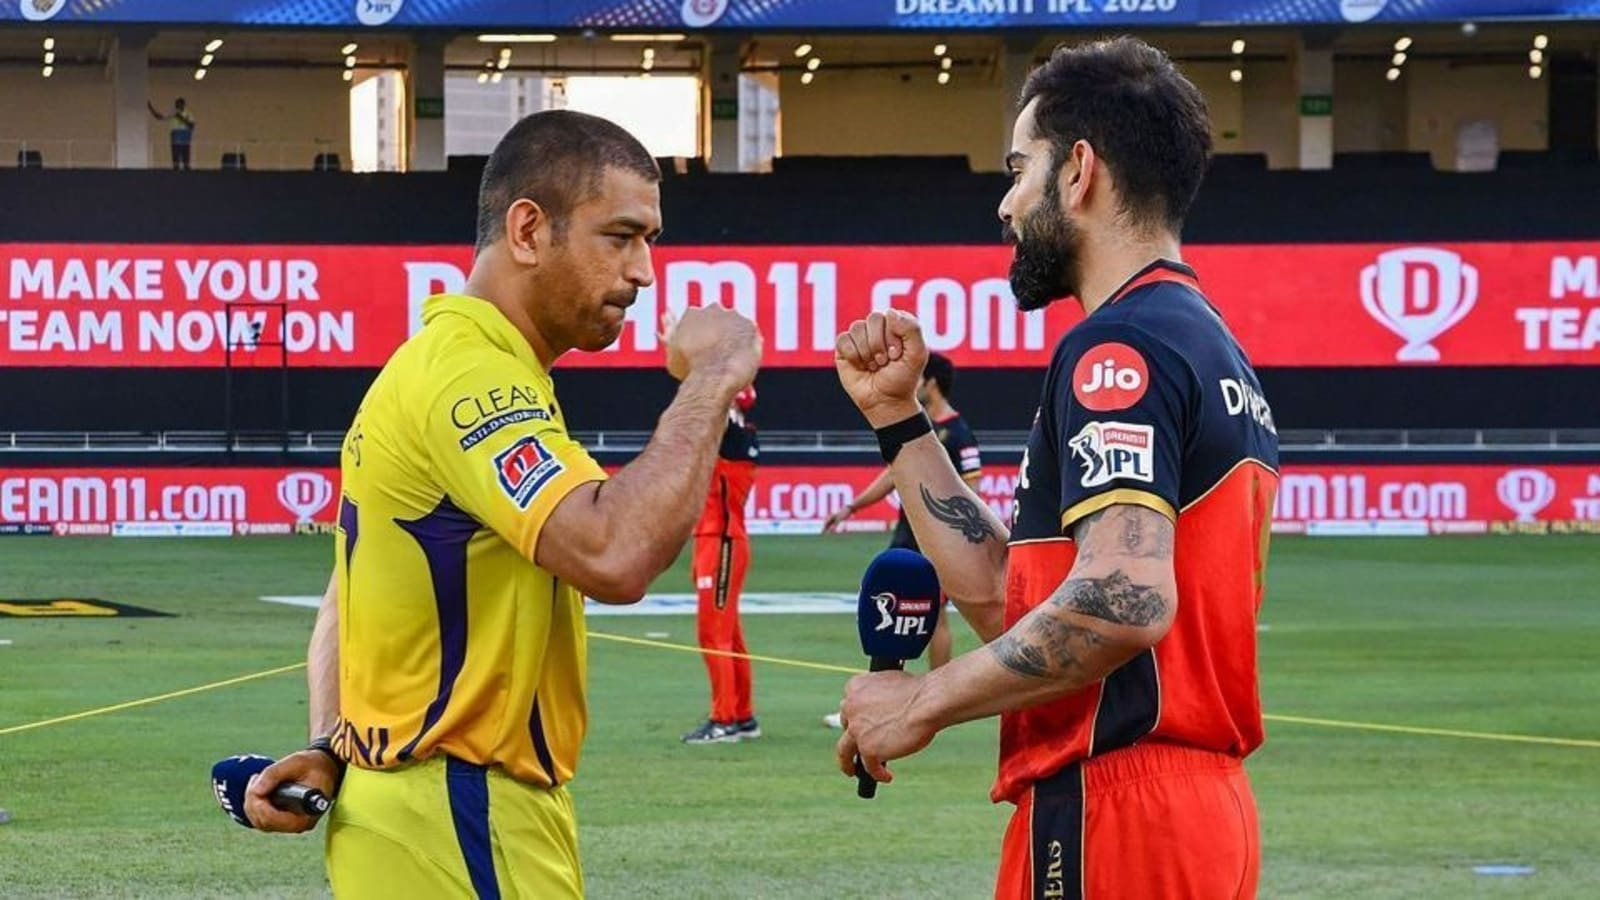 IPL 2021, CSK vs RCB Live Streaming: When and where to watch Chennai Super Kings vs Royal Challengers Bangalore Live | Cricket - Hindustan Times